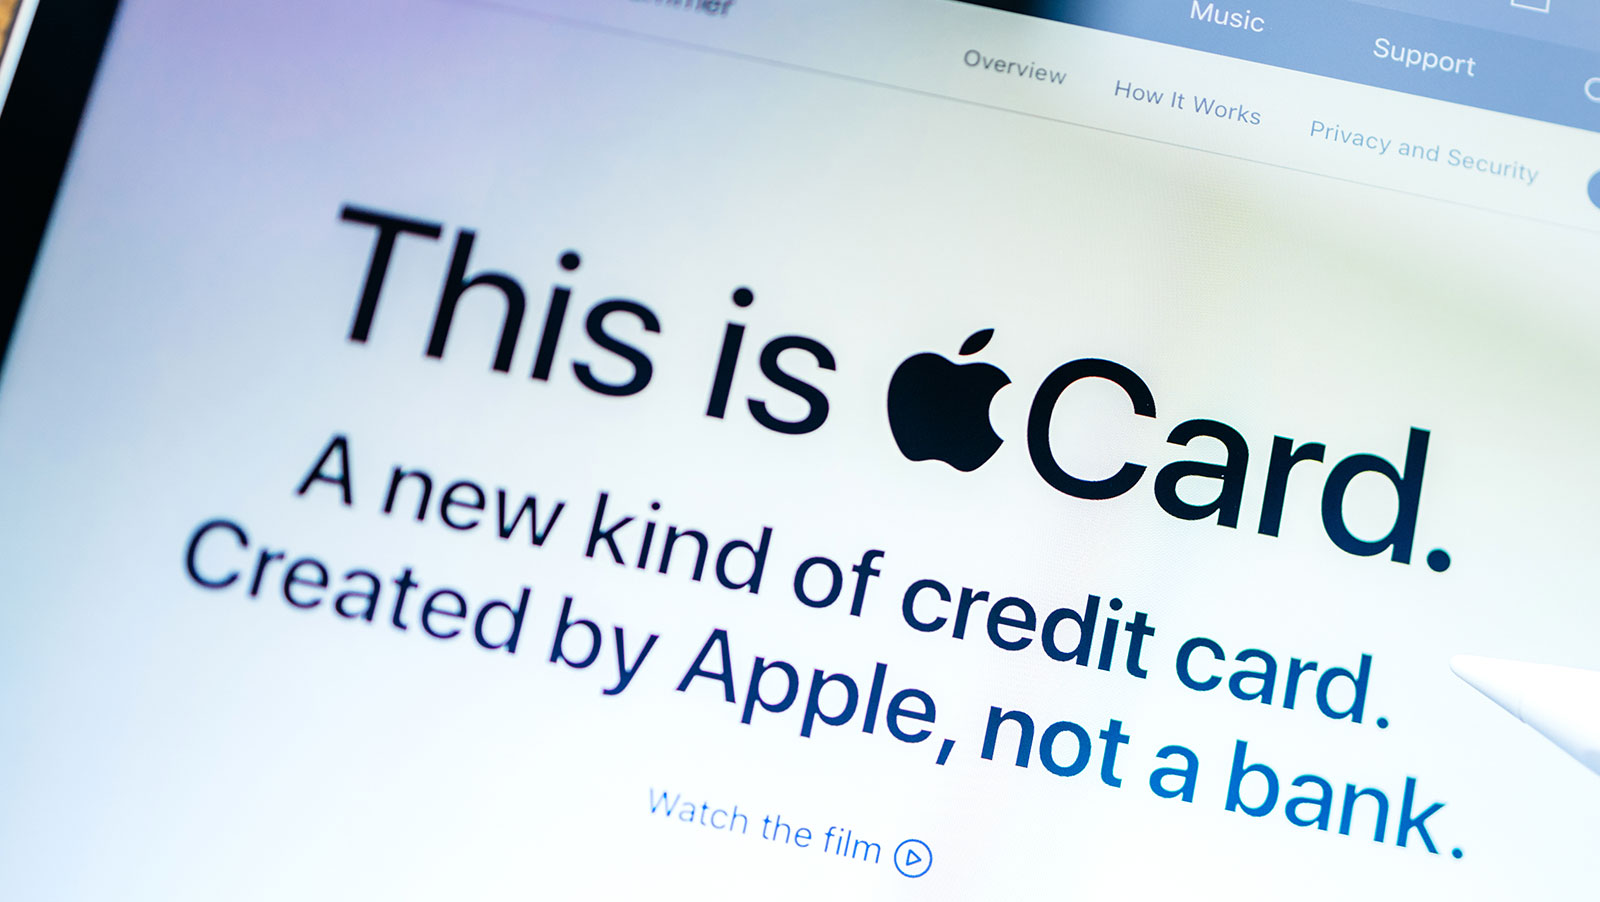 apple-to-release-credit-card-just-not-for-anything-fun